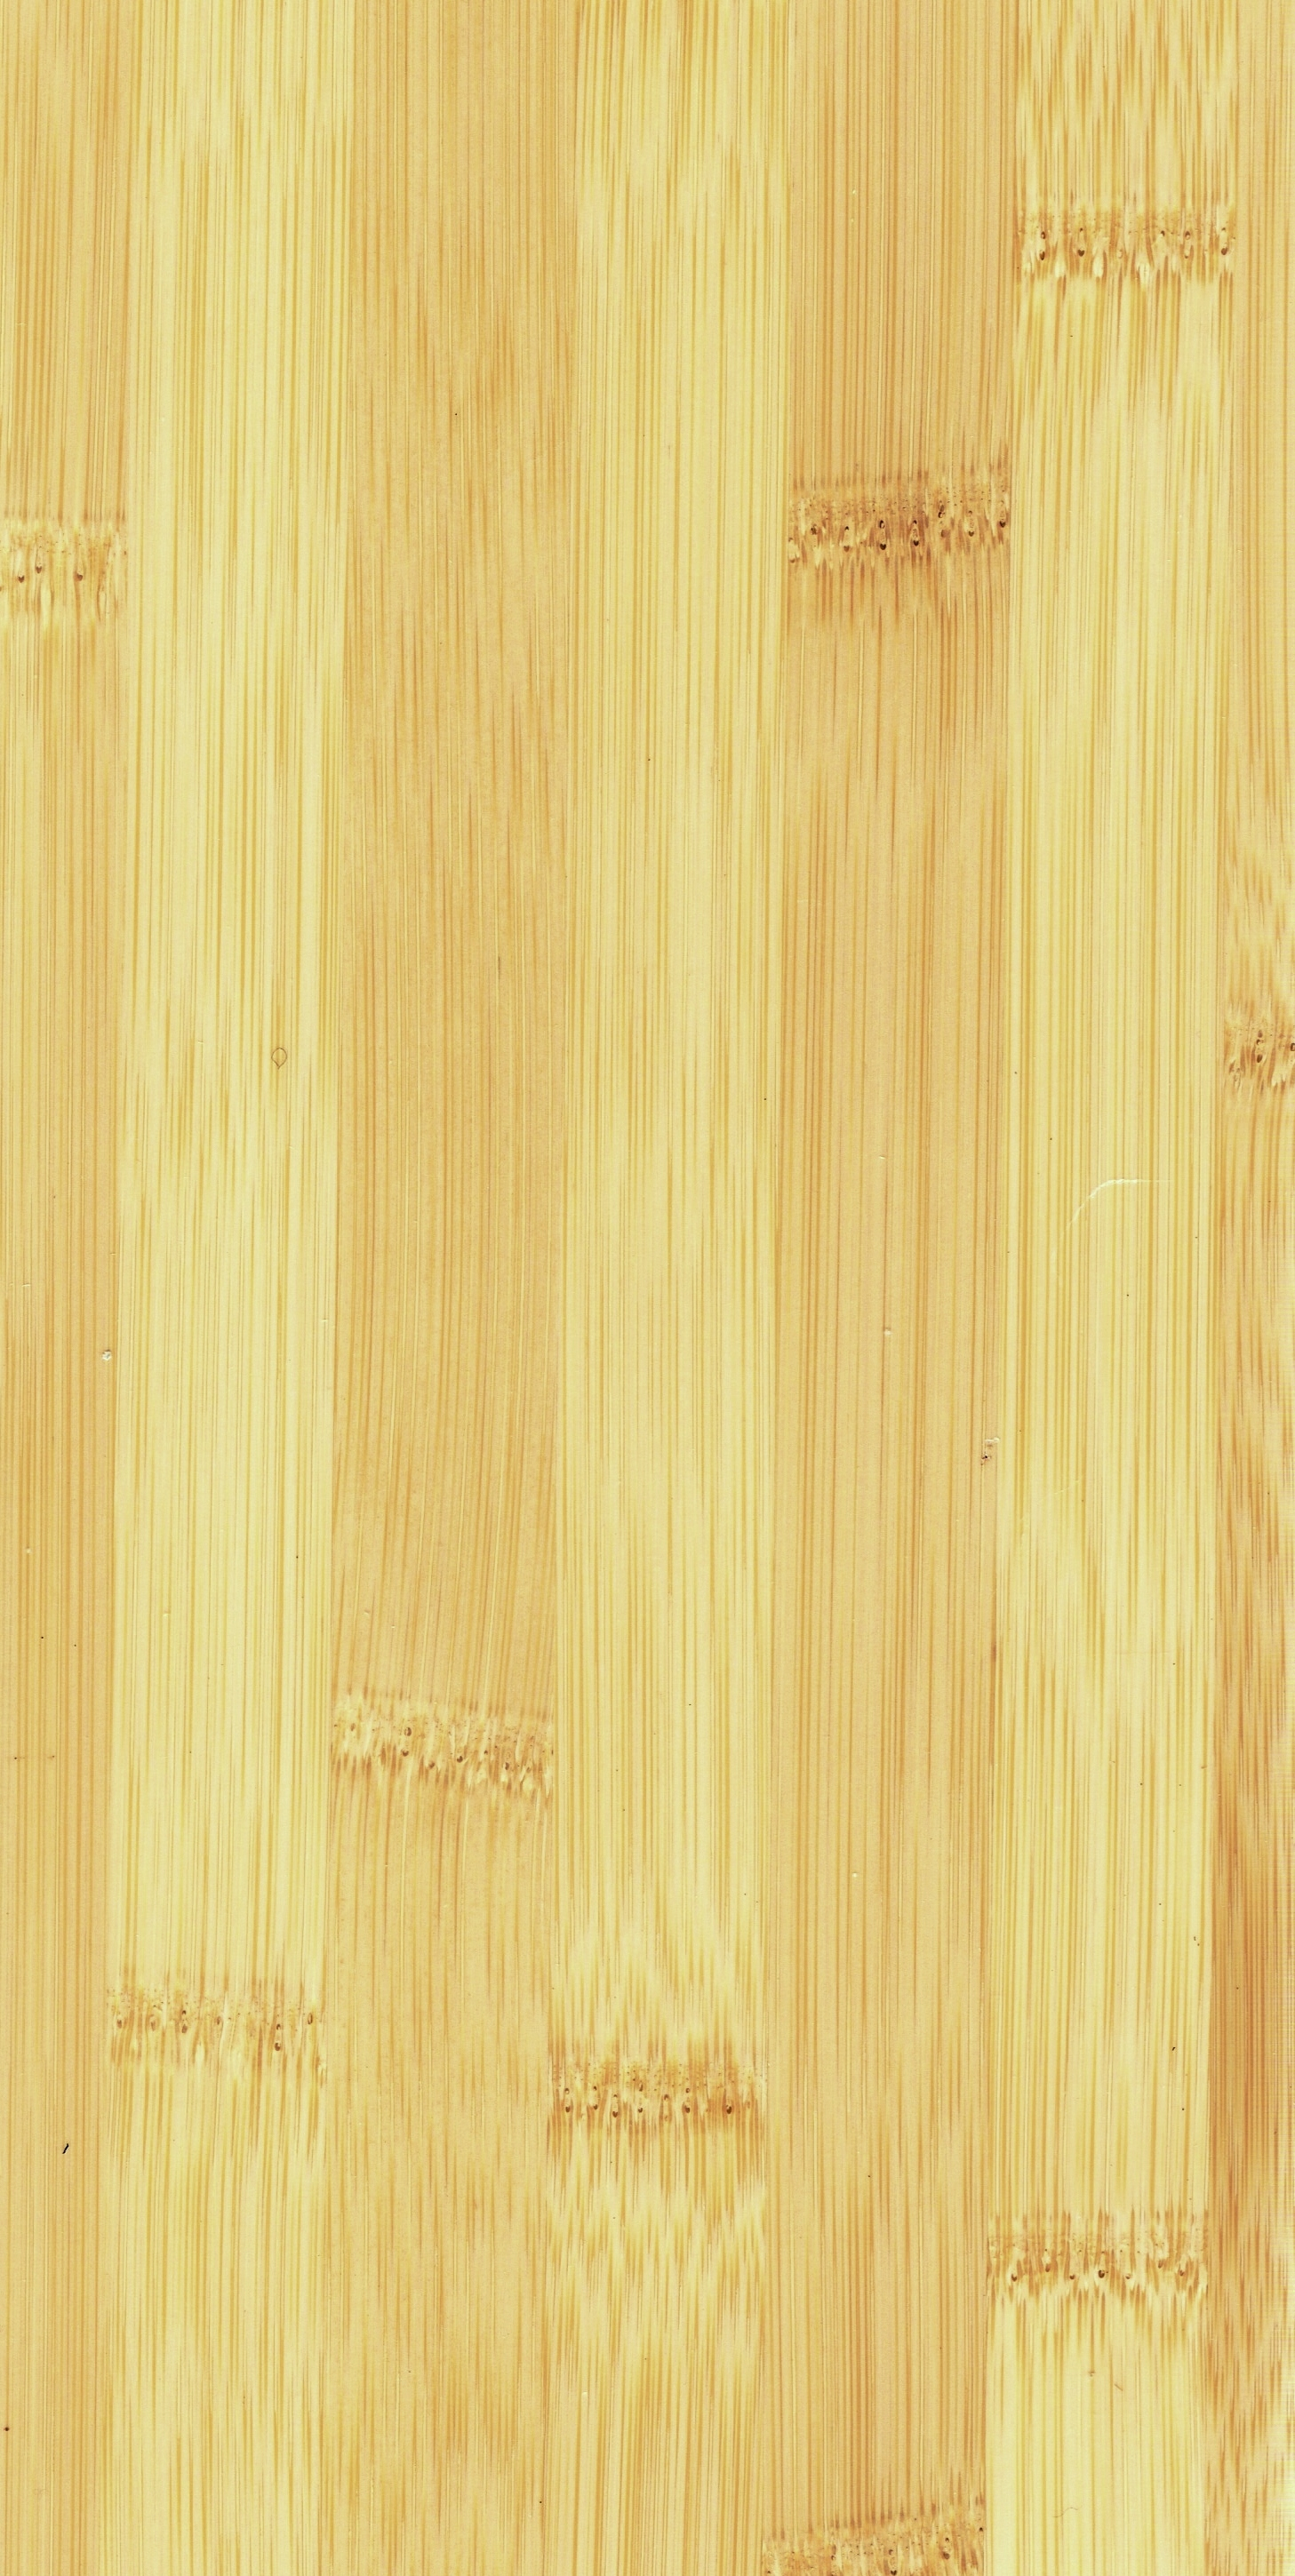 Bamboo Terminology From Cost Of Flooring